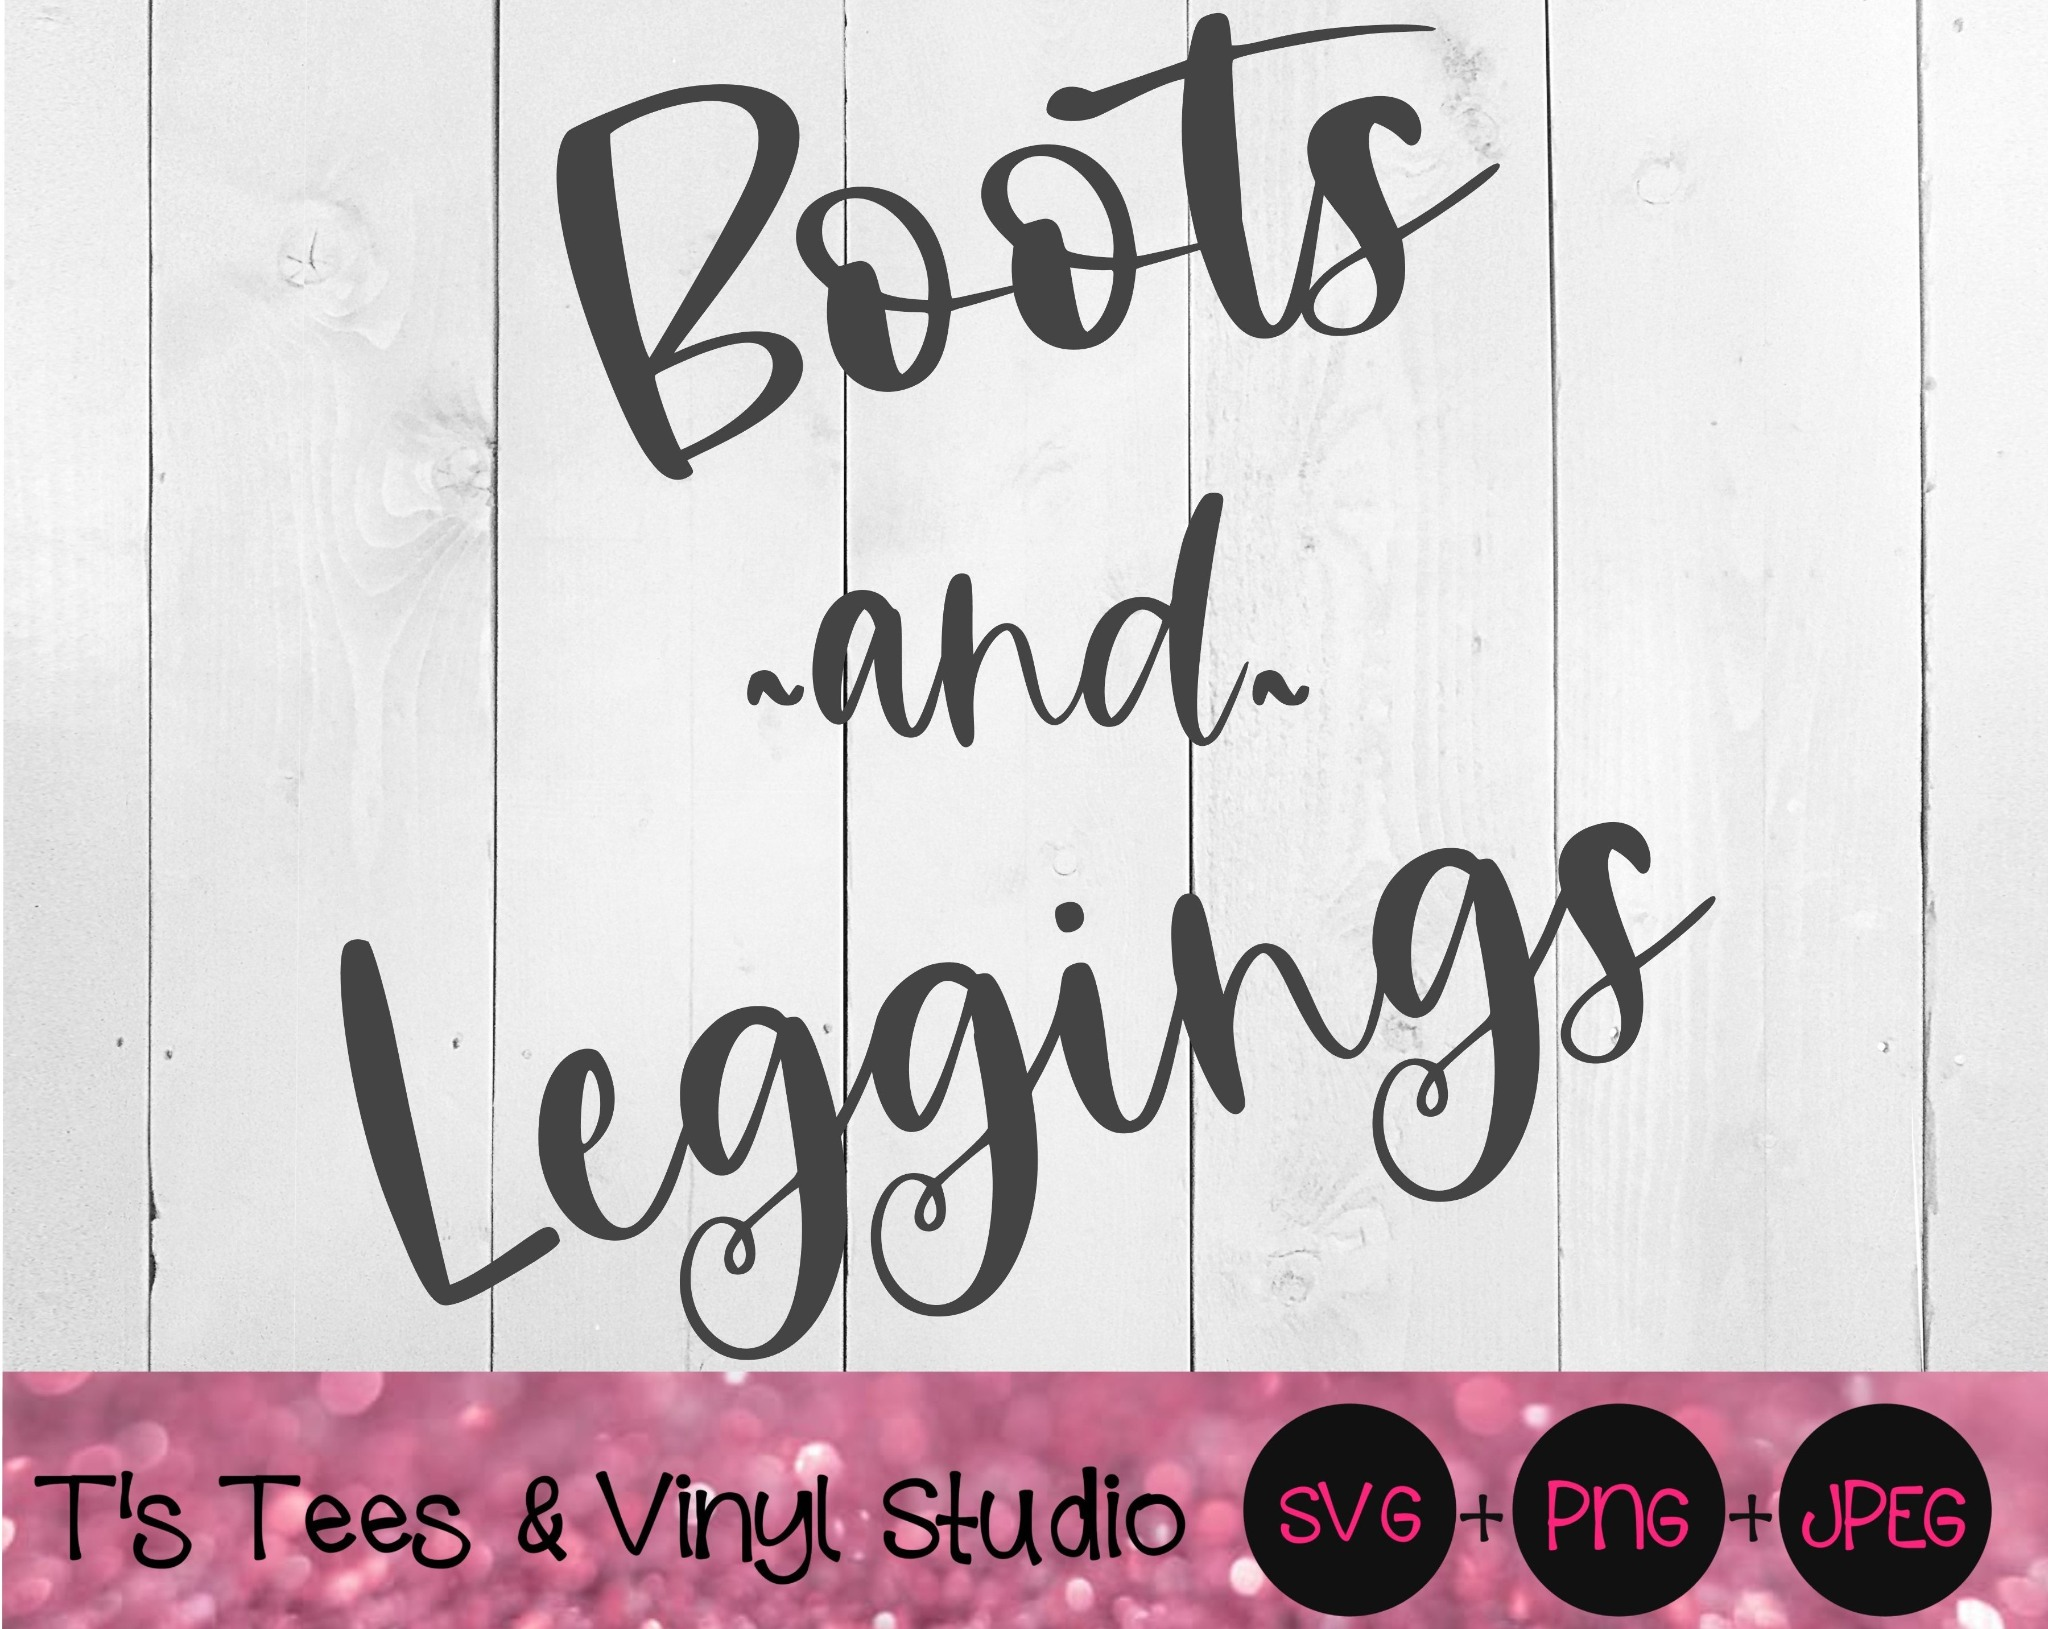 Boots And Leggings Svg, Boots Svg, Leggings Svg, Fall Svg, Autumn Svg, Boots And Leggings Png, Boots